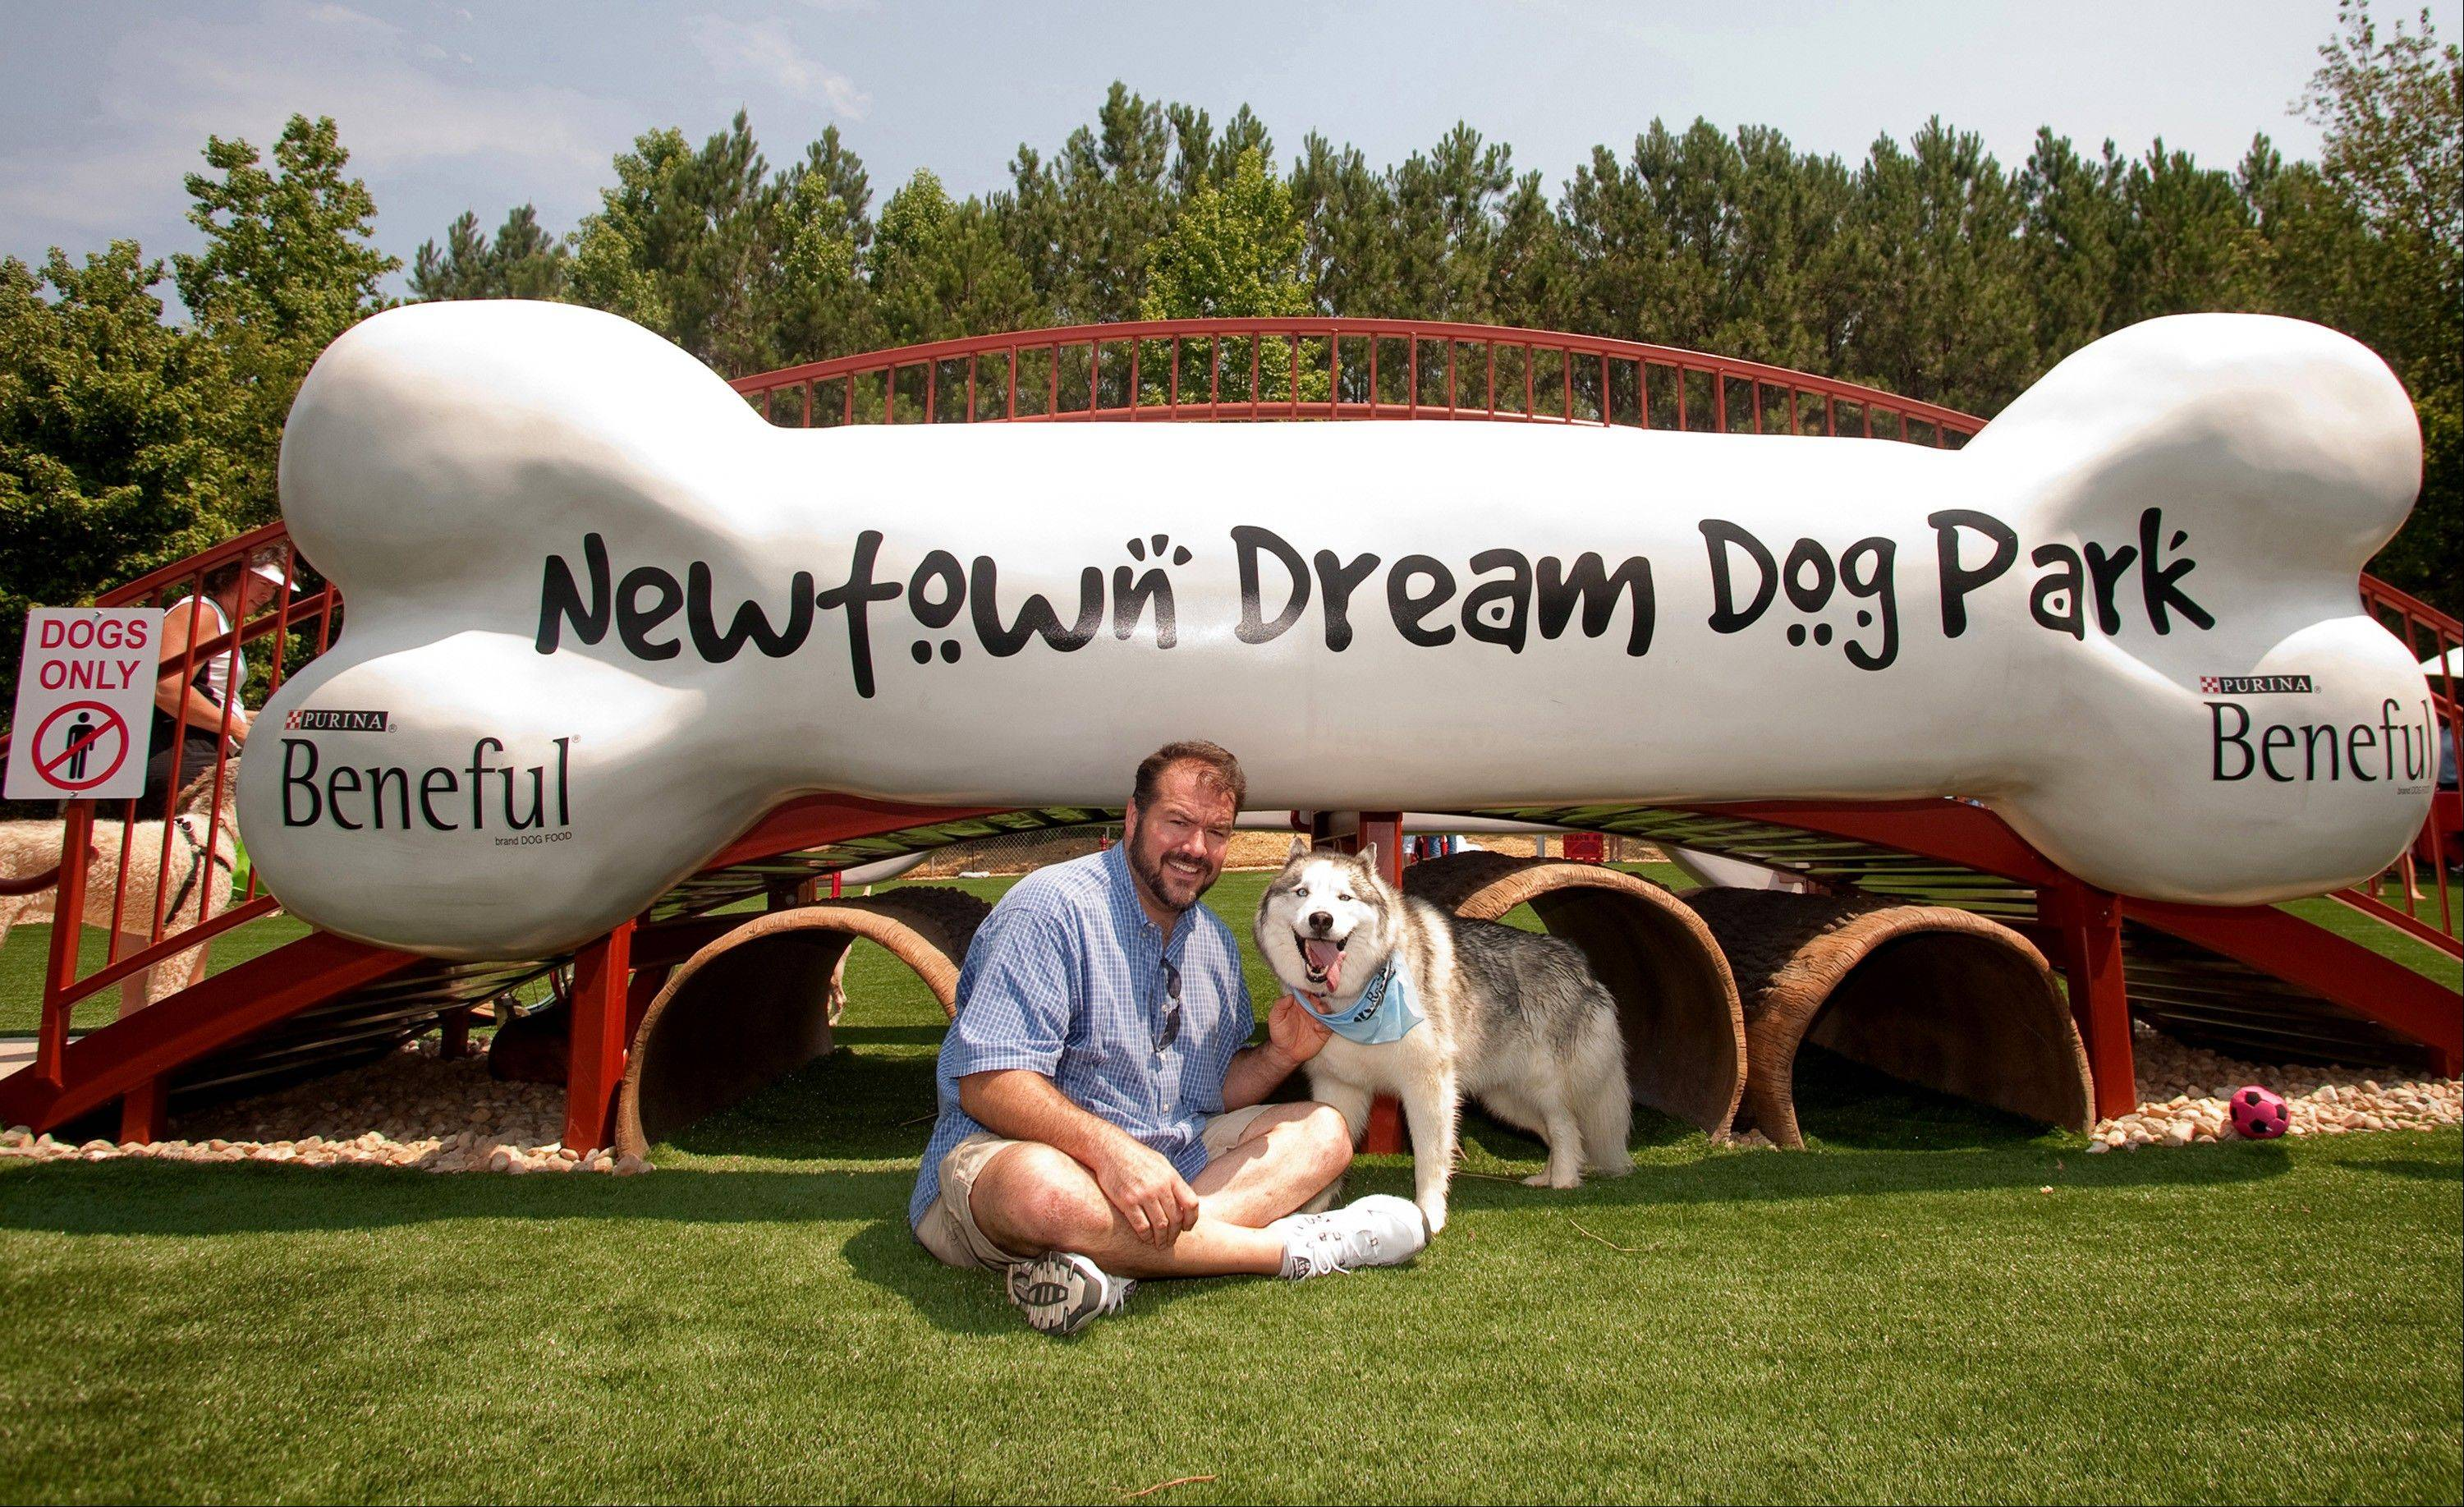 Grand Prize Winner of the 2010 Beneful Dream Dog Park Contest, Pat McNeely and Koda, at the unveiling of their Dream Dog Park in Johns Creek, Ga. The dog park offers water splash pads, a 3-D dog bone bridge and crawl tunnels.